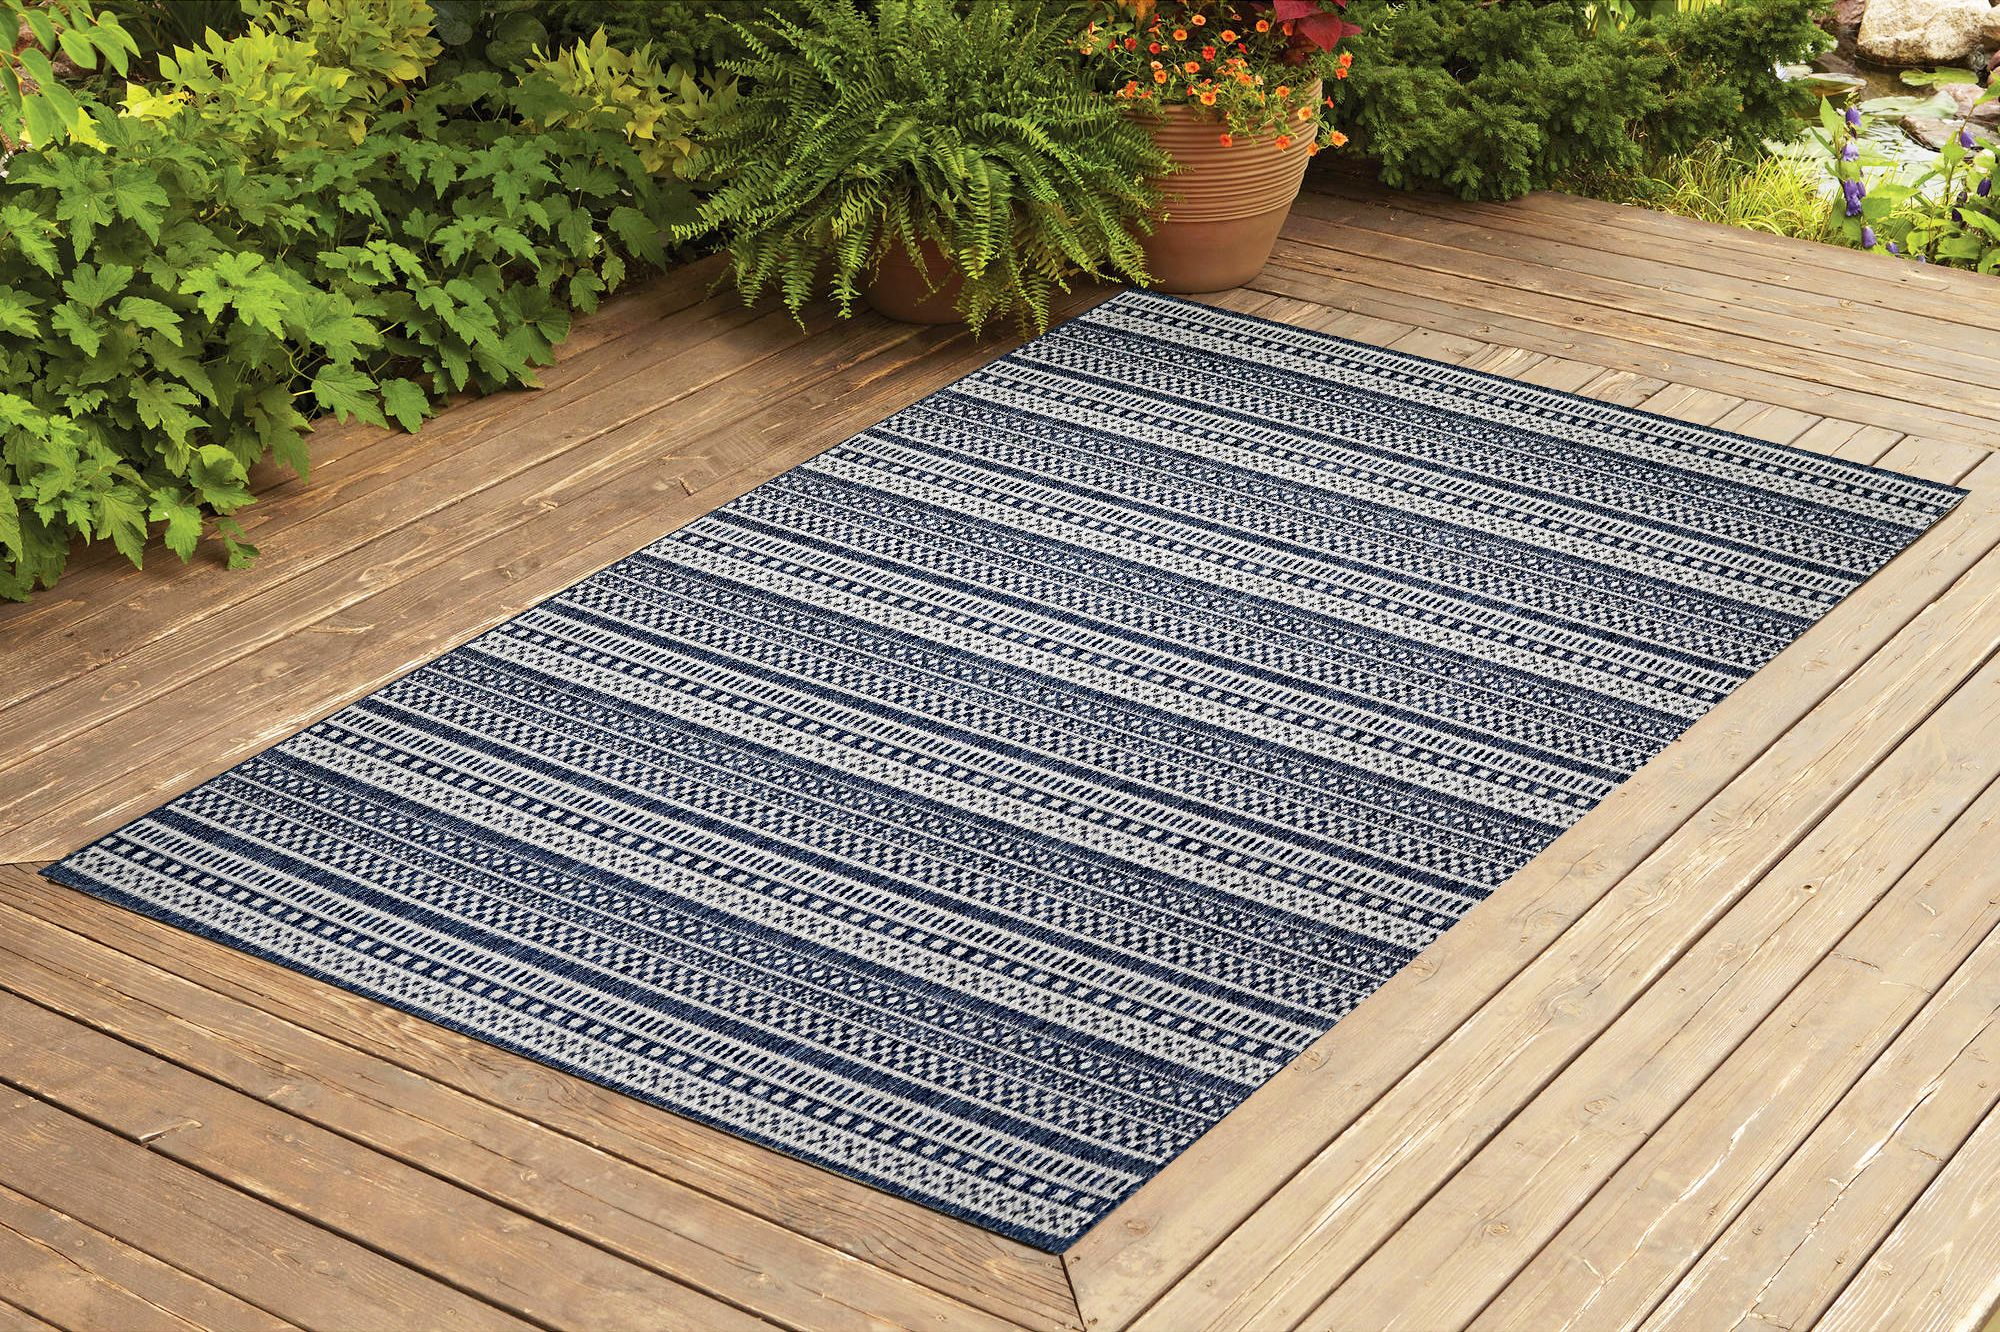 benissimo contemporary indoor outdoor area rug stripes collection i 5x7 i navy